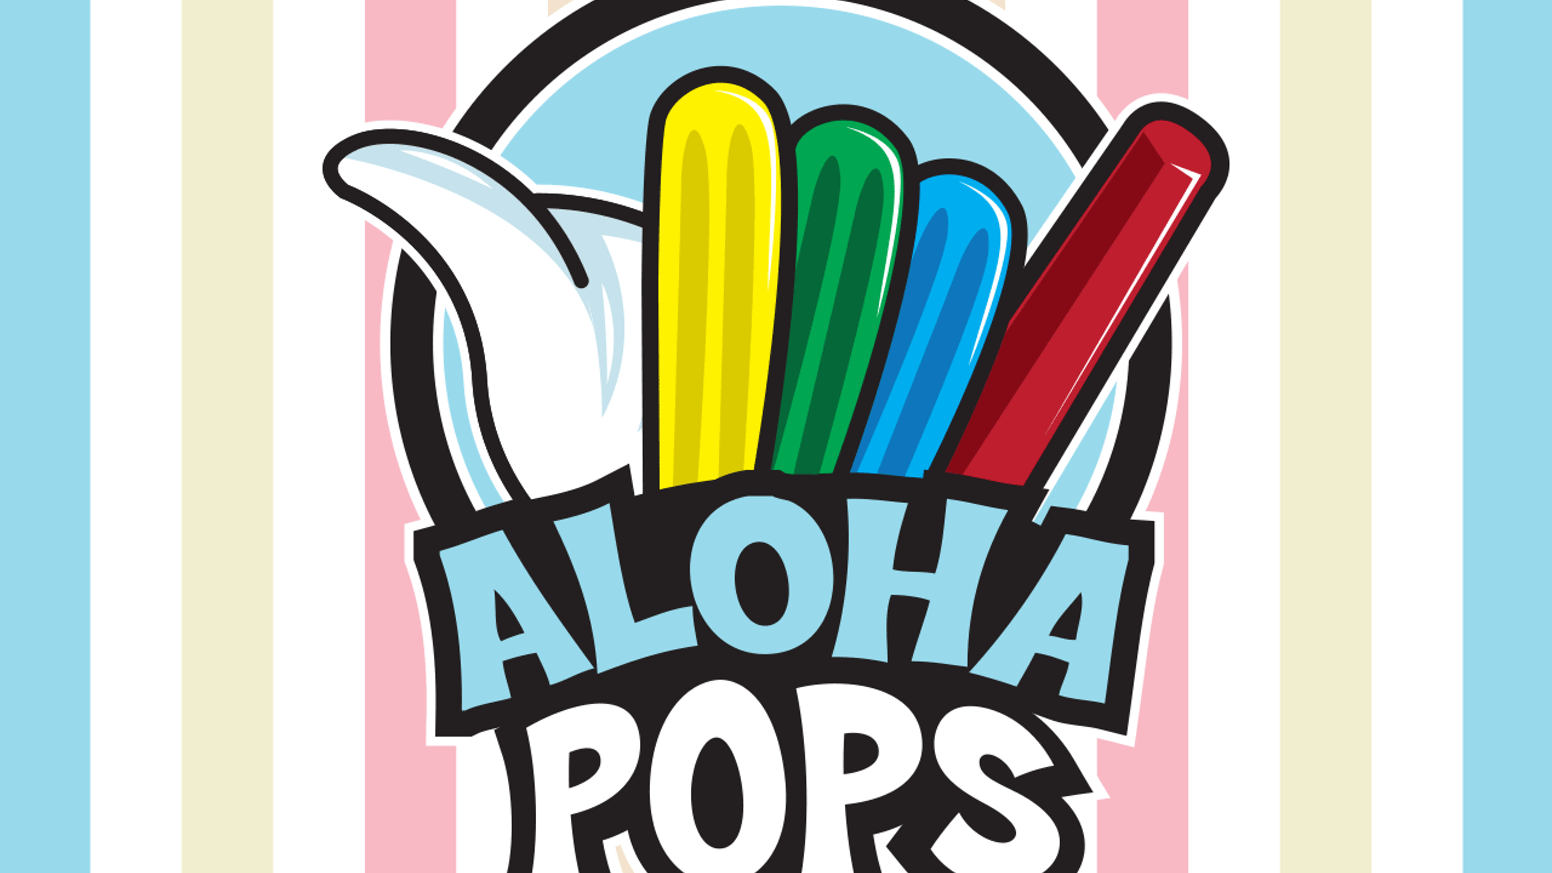 Aloha Pops take Hawaii! Fresh Ingredients & Local Flavors! by Kathy